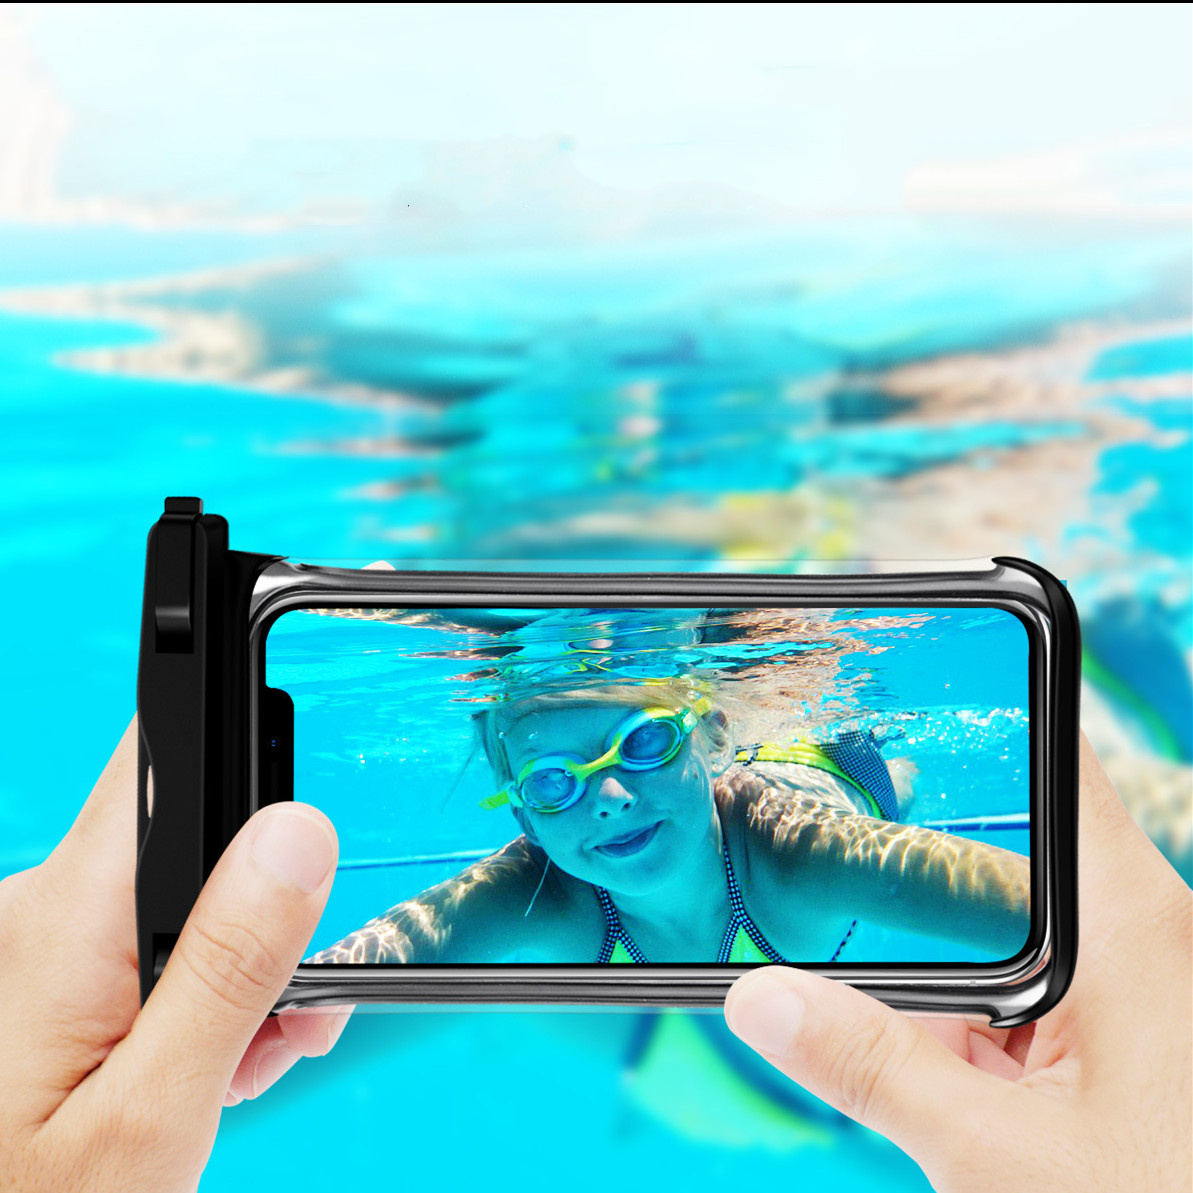 Hcd78978d3ce6414bba63ff6e693180afk - Full View Waterproof Swimming Pouch Case for Phone Underwater Snow Rainforest Transparent Dry Bag Big Mobile Phone Bag Sealed